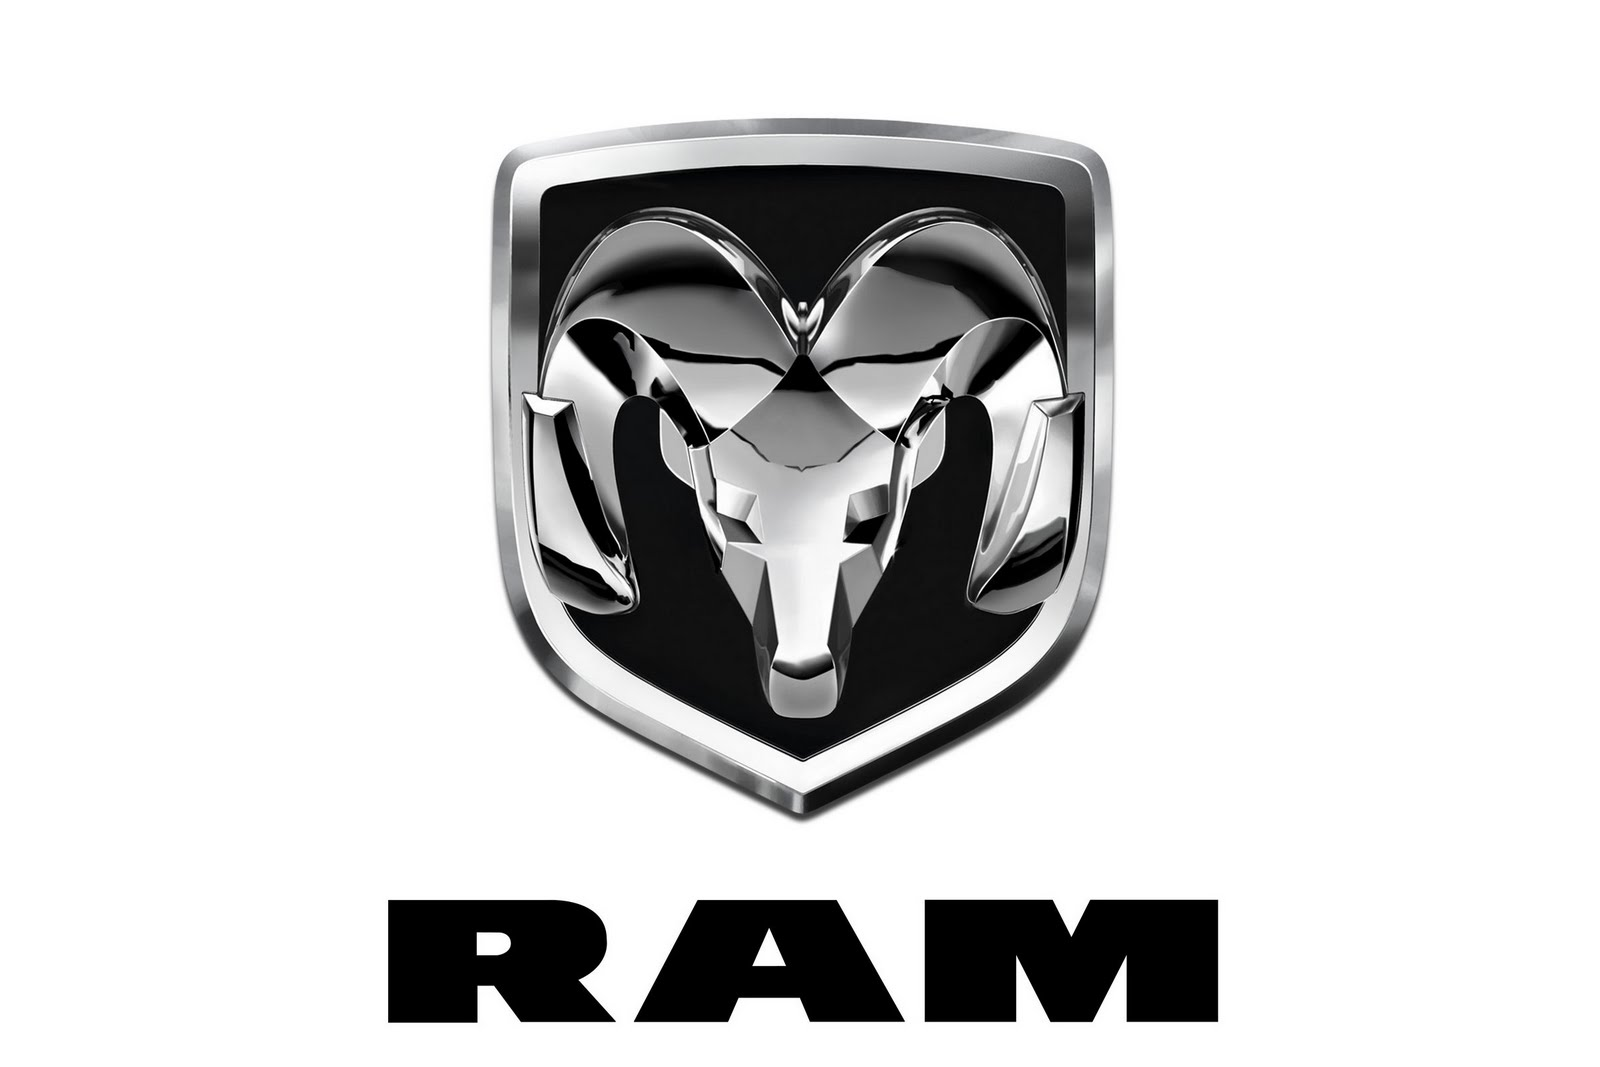 Ram Logo on auto car dump truck